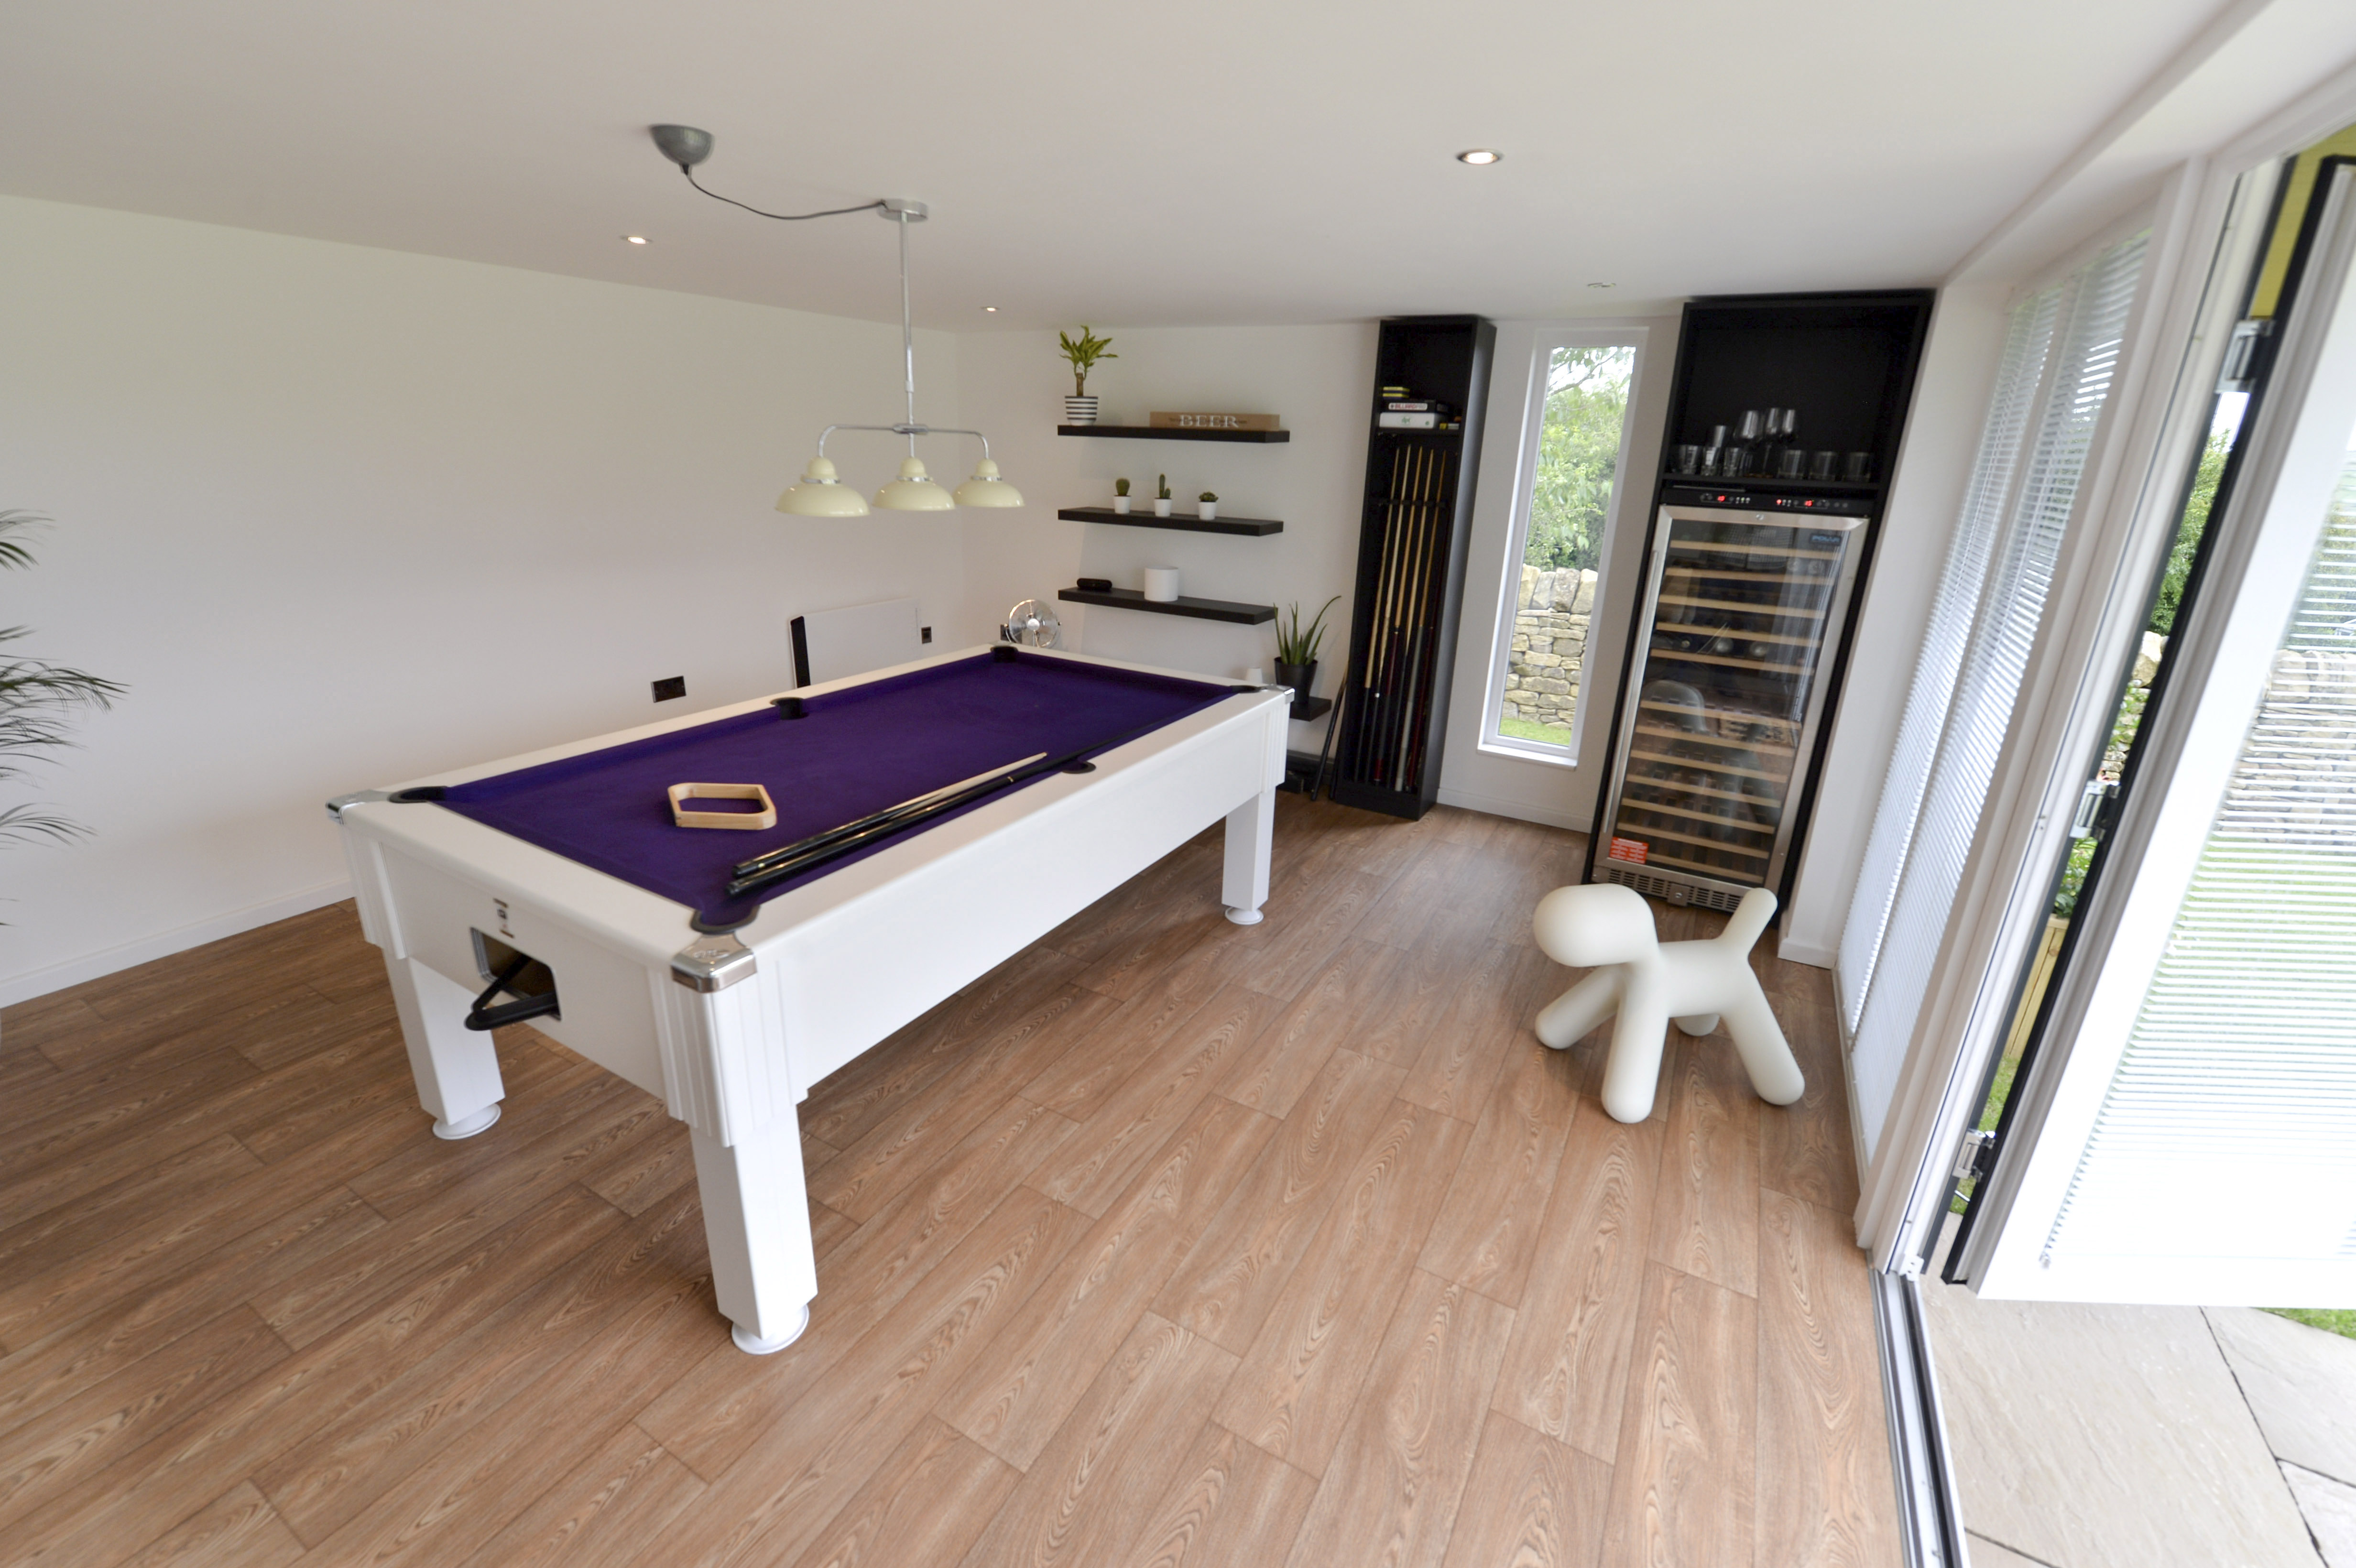 made to measure garden rooms, made to measure garden offices, bespoke garden rooms, bespoke garden offices